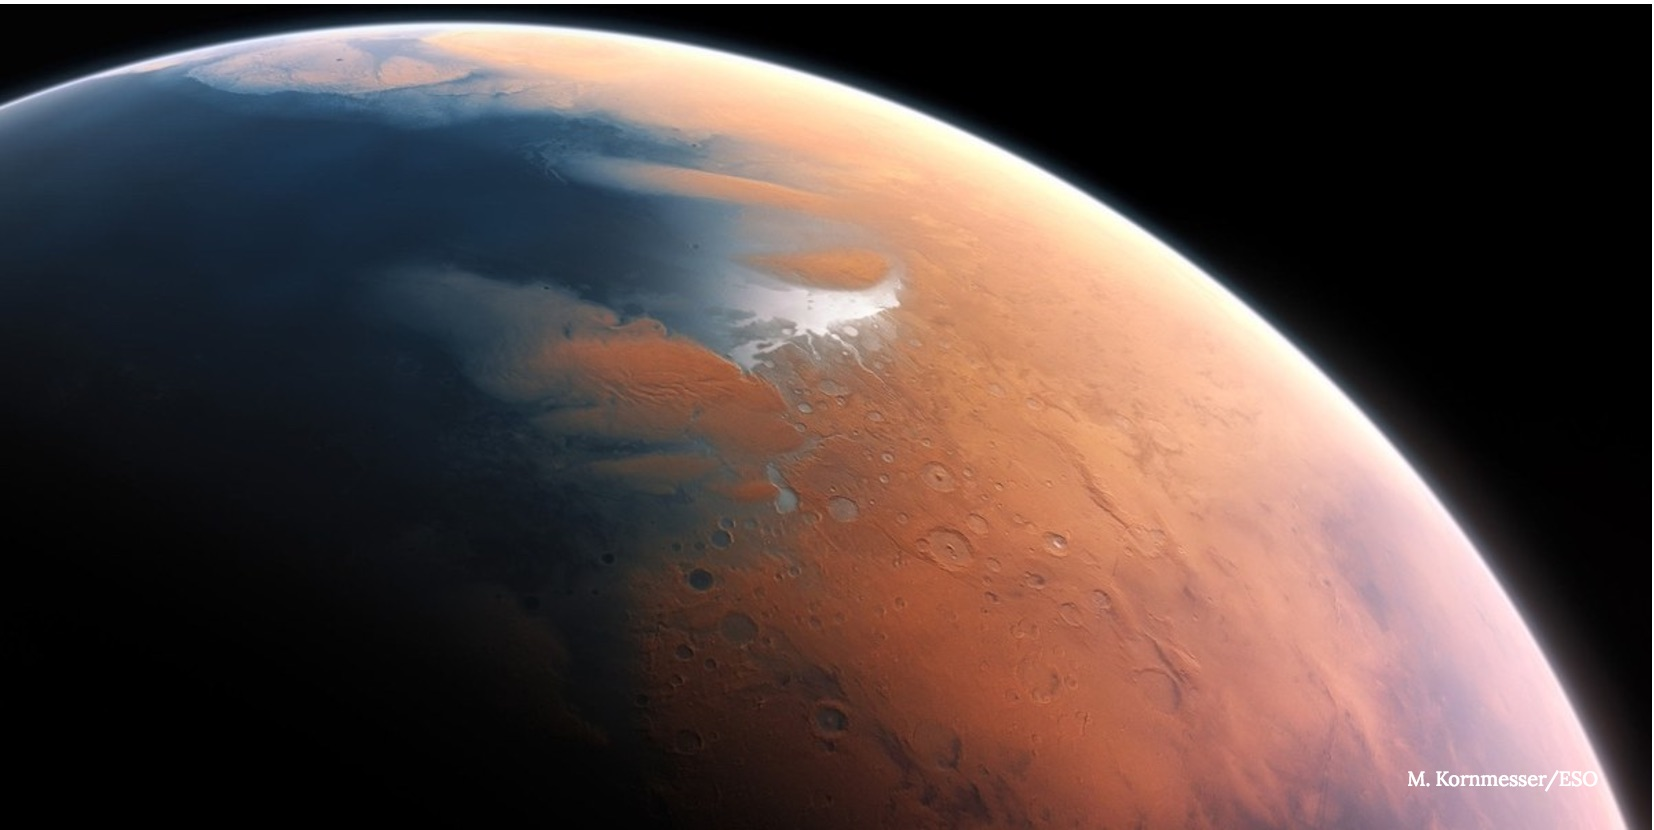 Bursts of Methane May Have Prepped Ancient Mars for Life